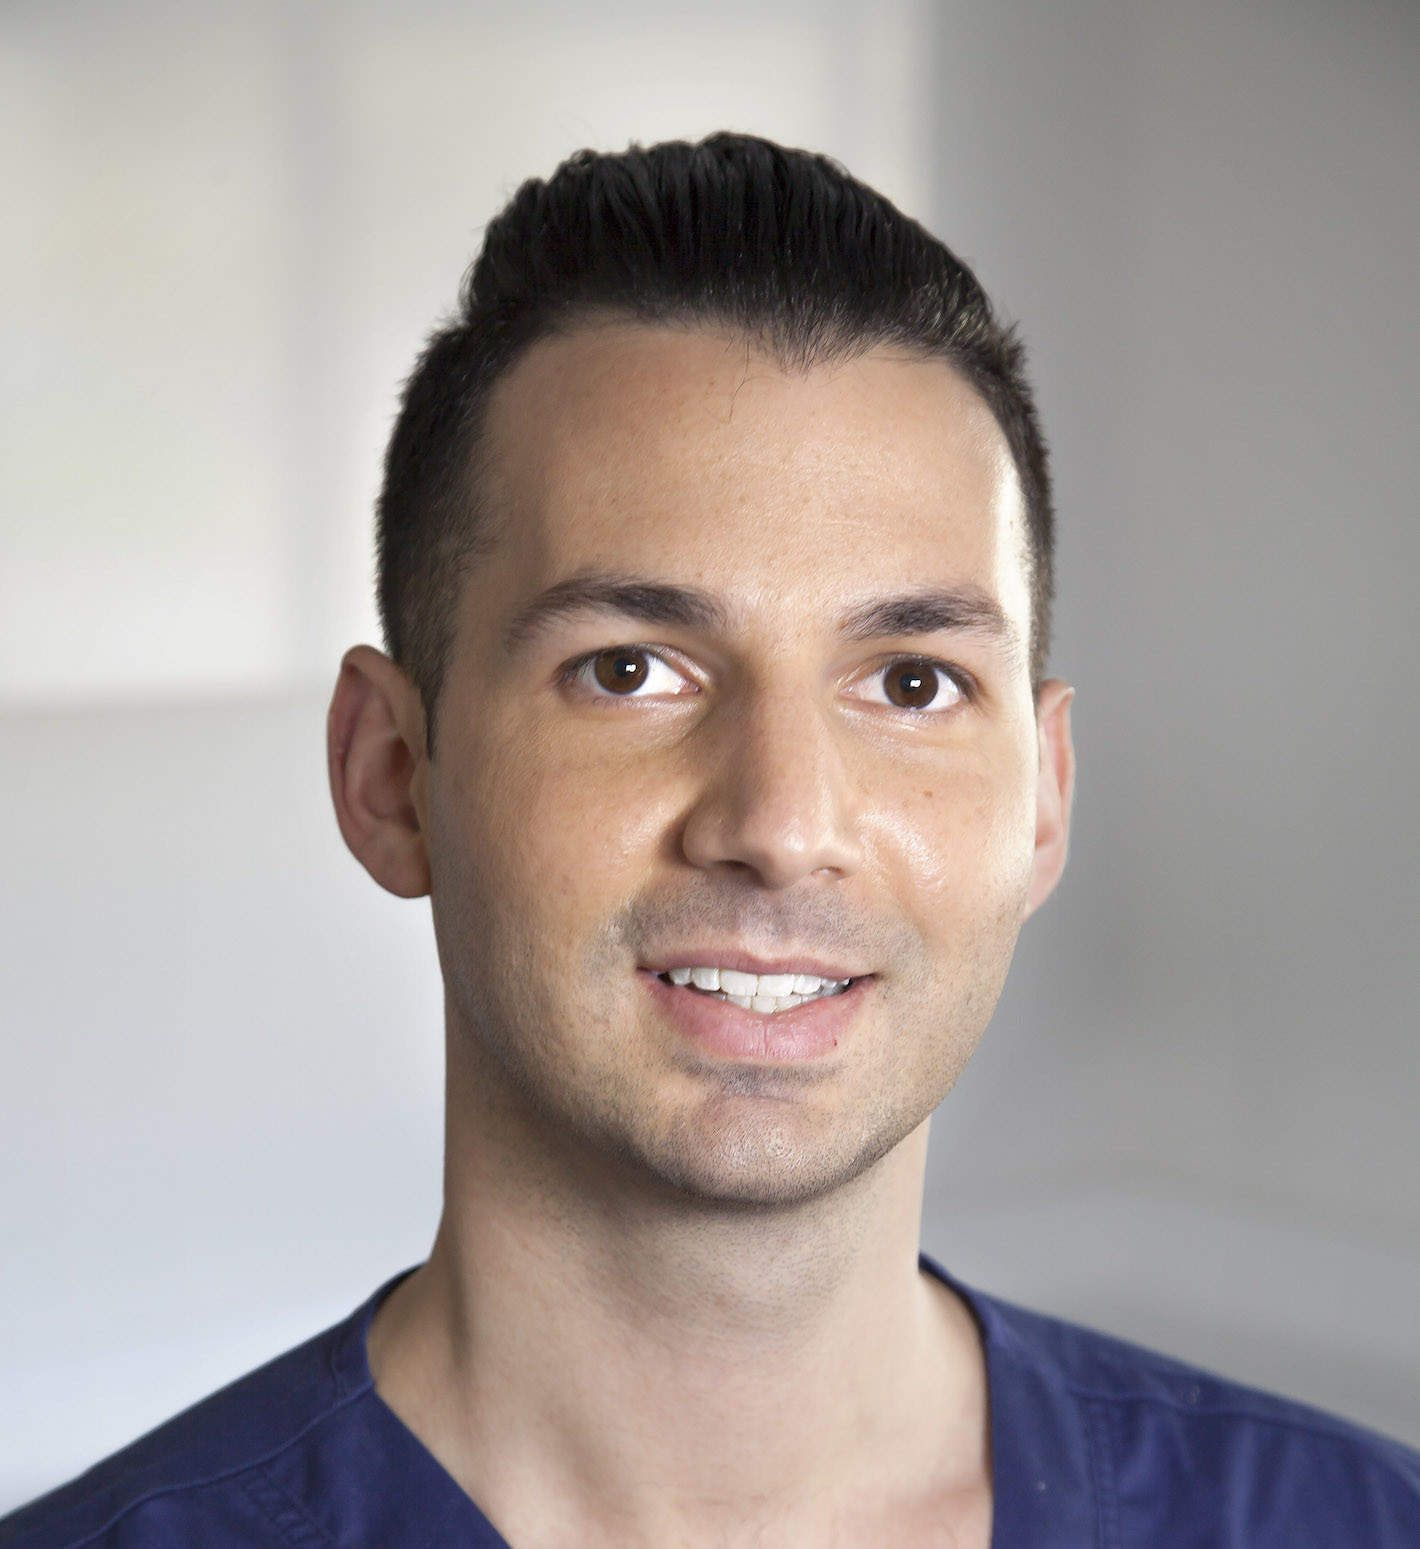 Dr James Malouf From Brisbane Australia A Leading Cosmetic Dentist Joins Ehealth Radio